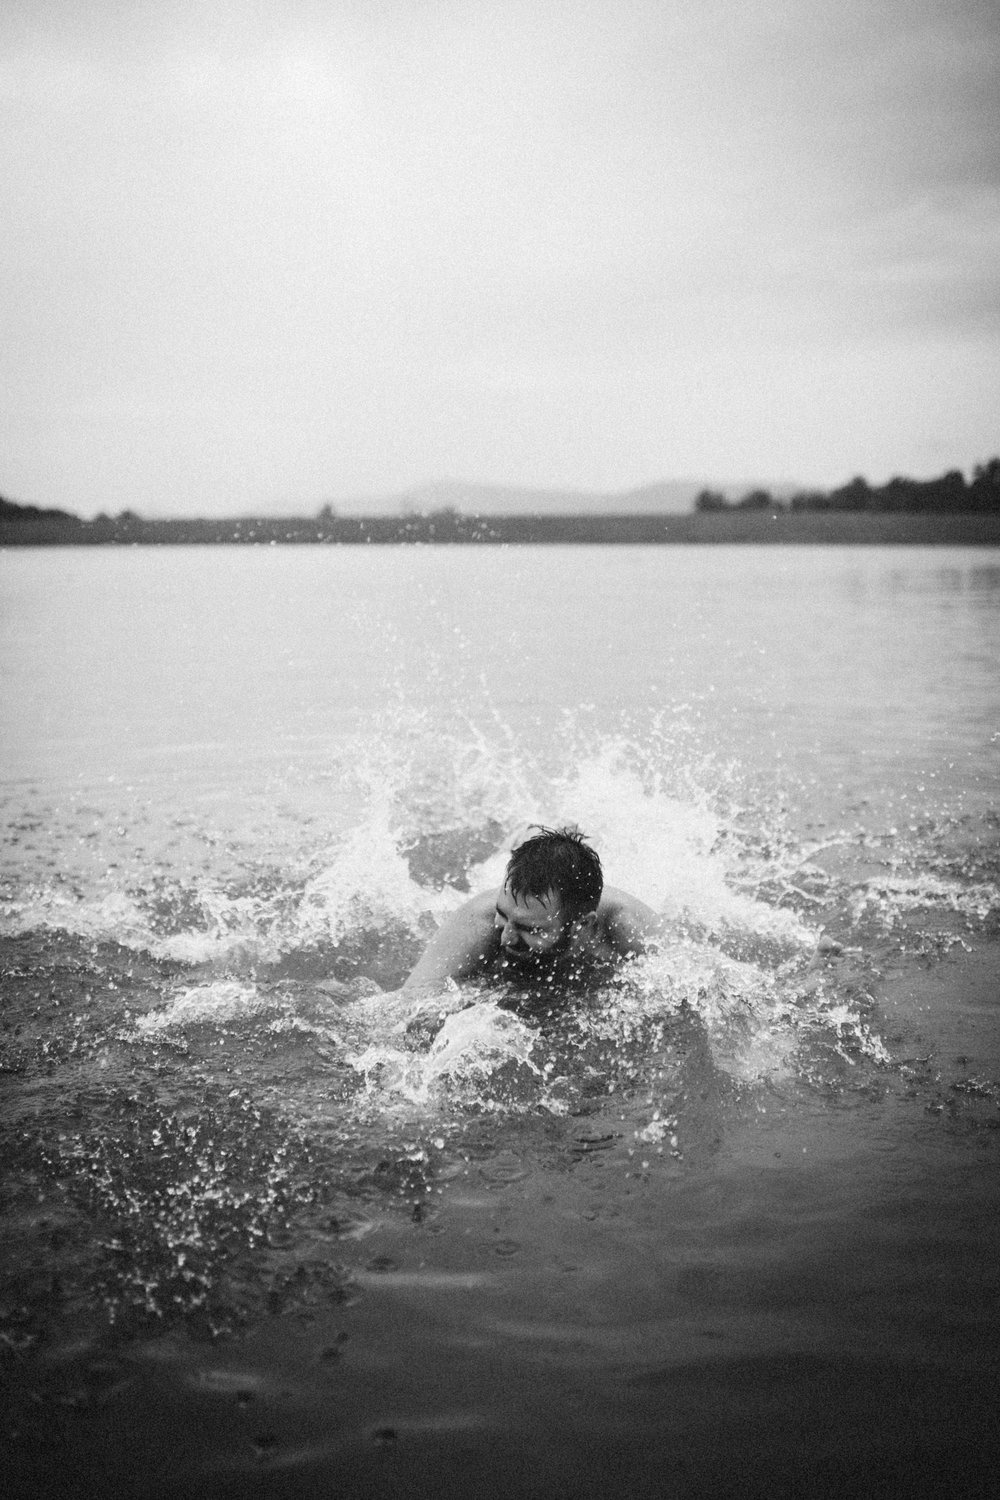 Sarah-Katherine-Davis-Photography-Louisville-Kentucky-Wedding-Elopement-Photographer-Just-Because-Session-Stormy-Blue-Hour-Swimming-In-Lake-Couple-Session-Abby-Schyler-137bw.jpg